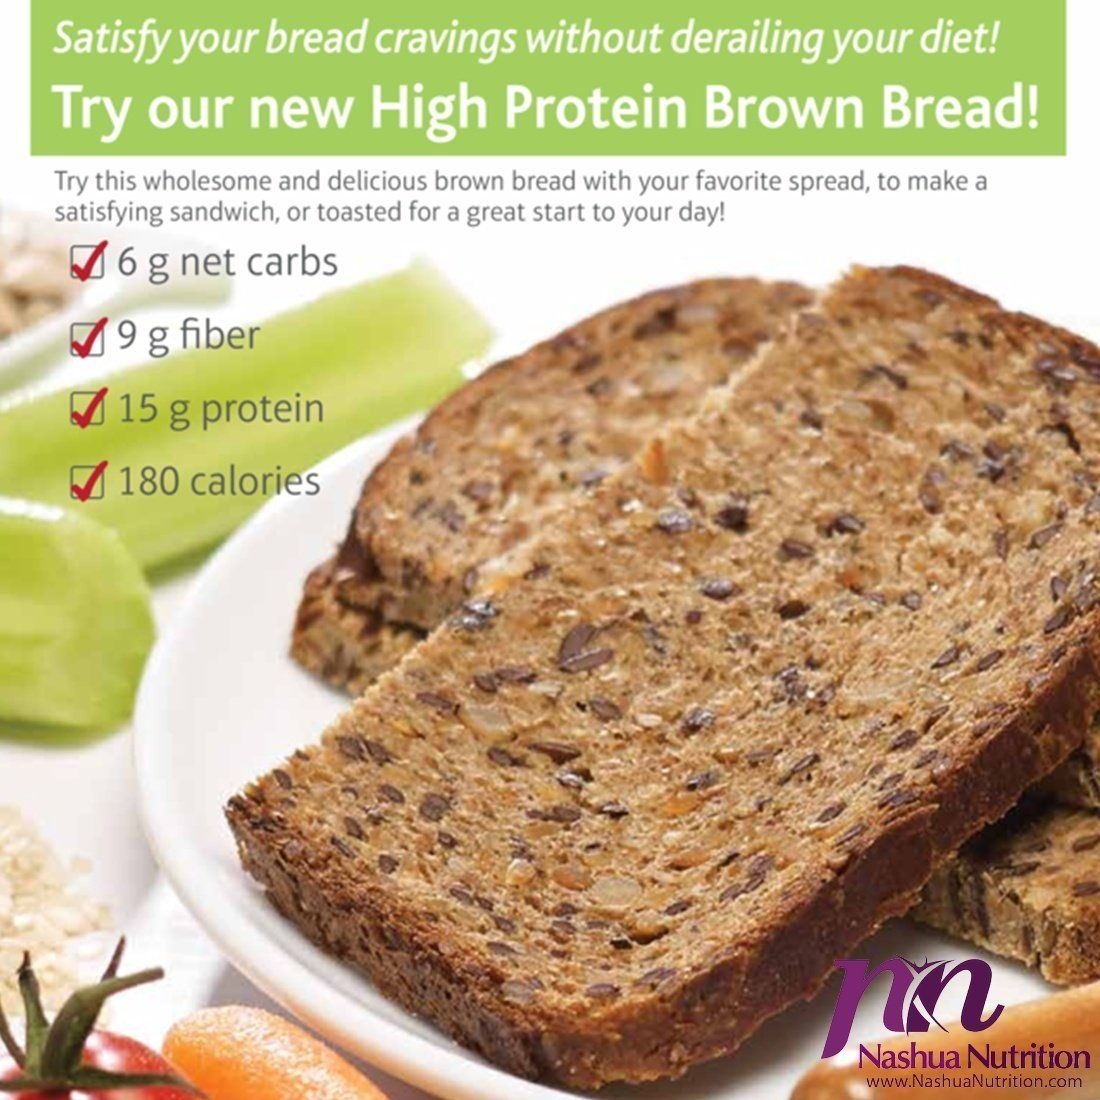 ProtiThin High Protein Brown Bread 15g Protein High Fiber